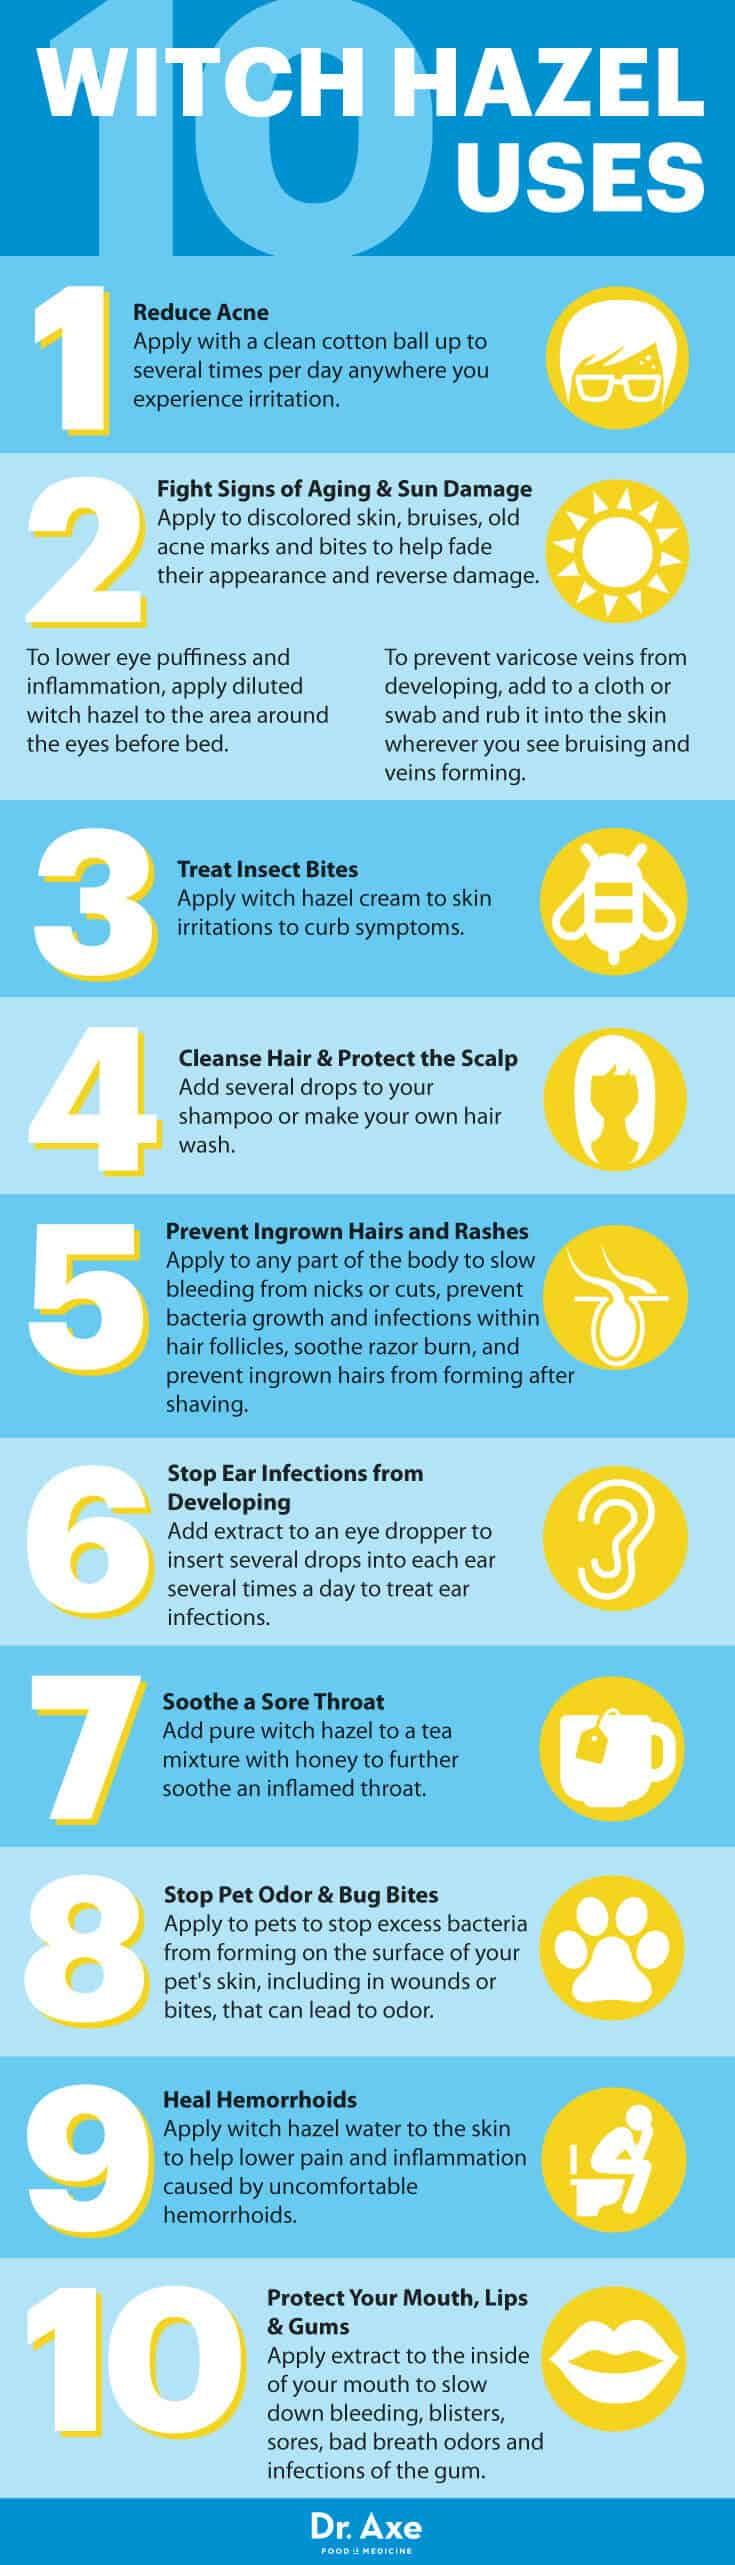 How To Use Witch Hazel To Clear Up Your Skin Fast Dr Axe